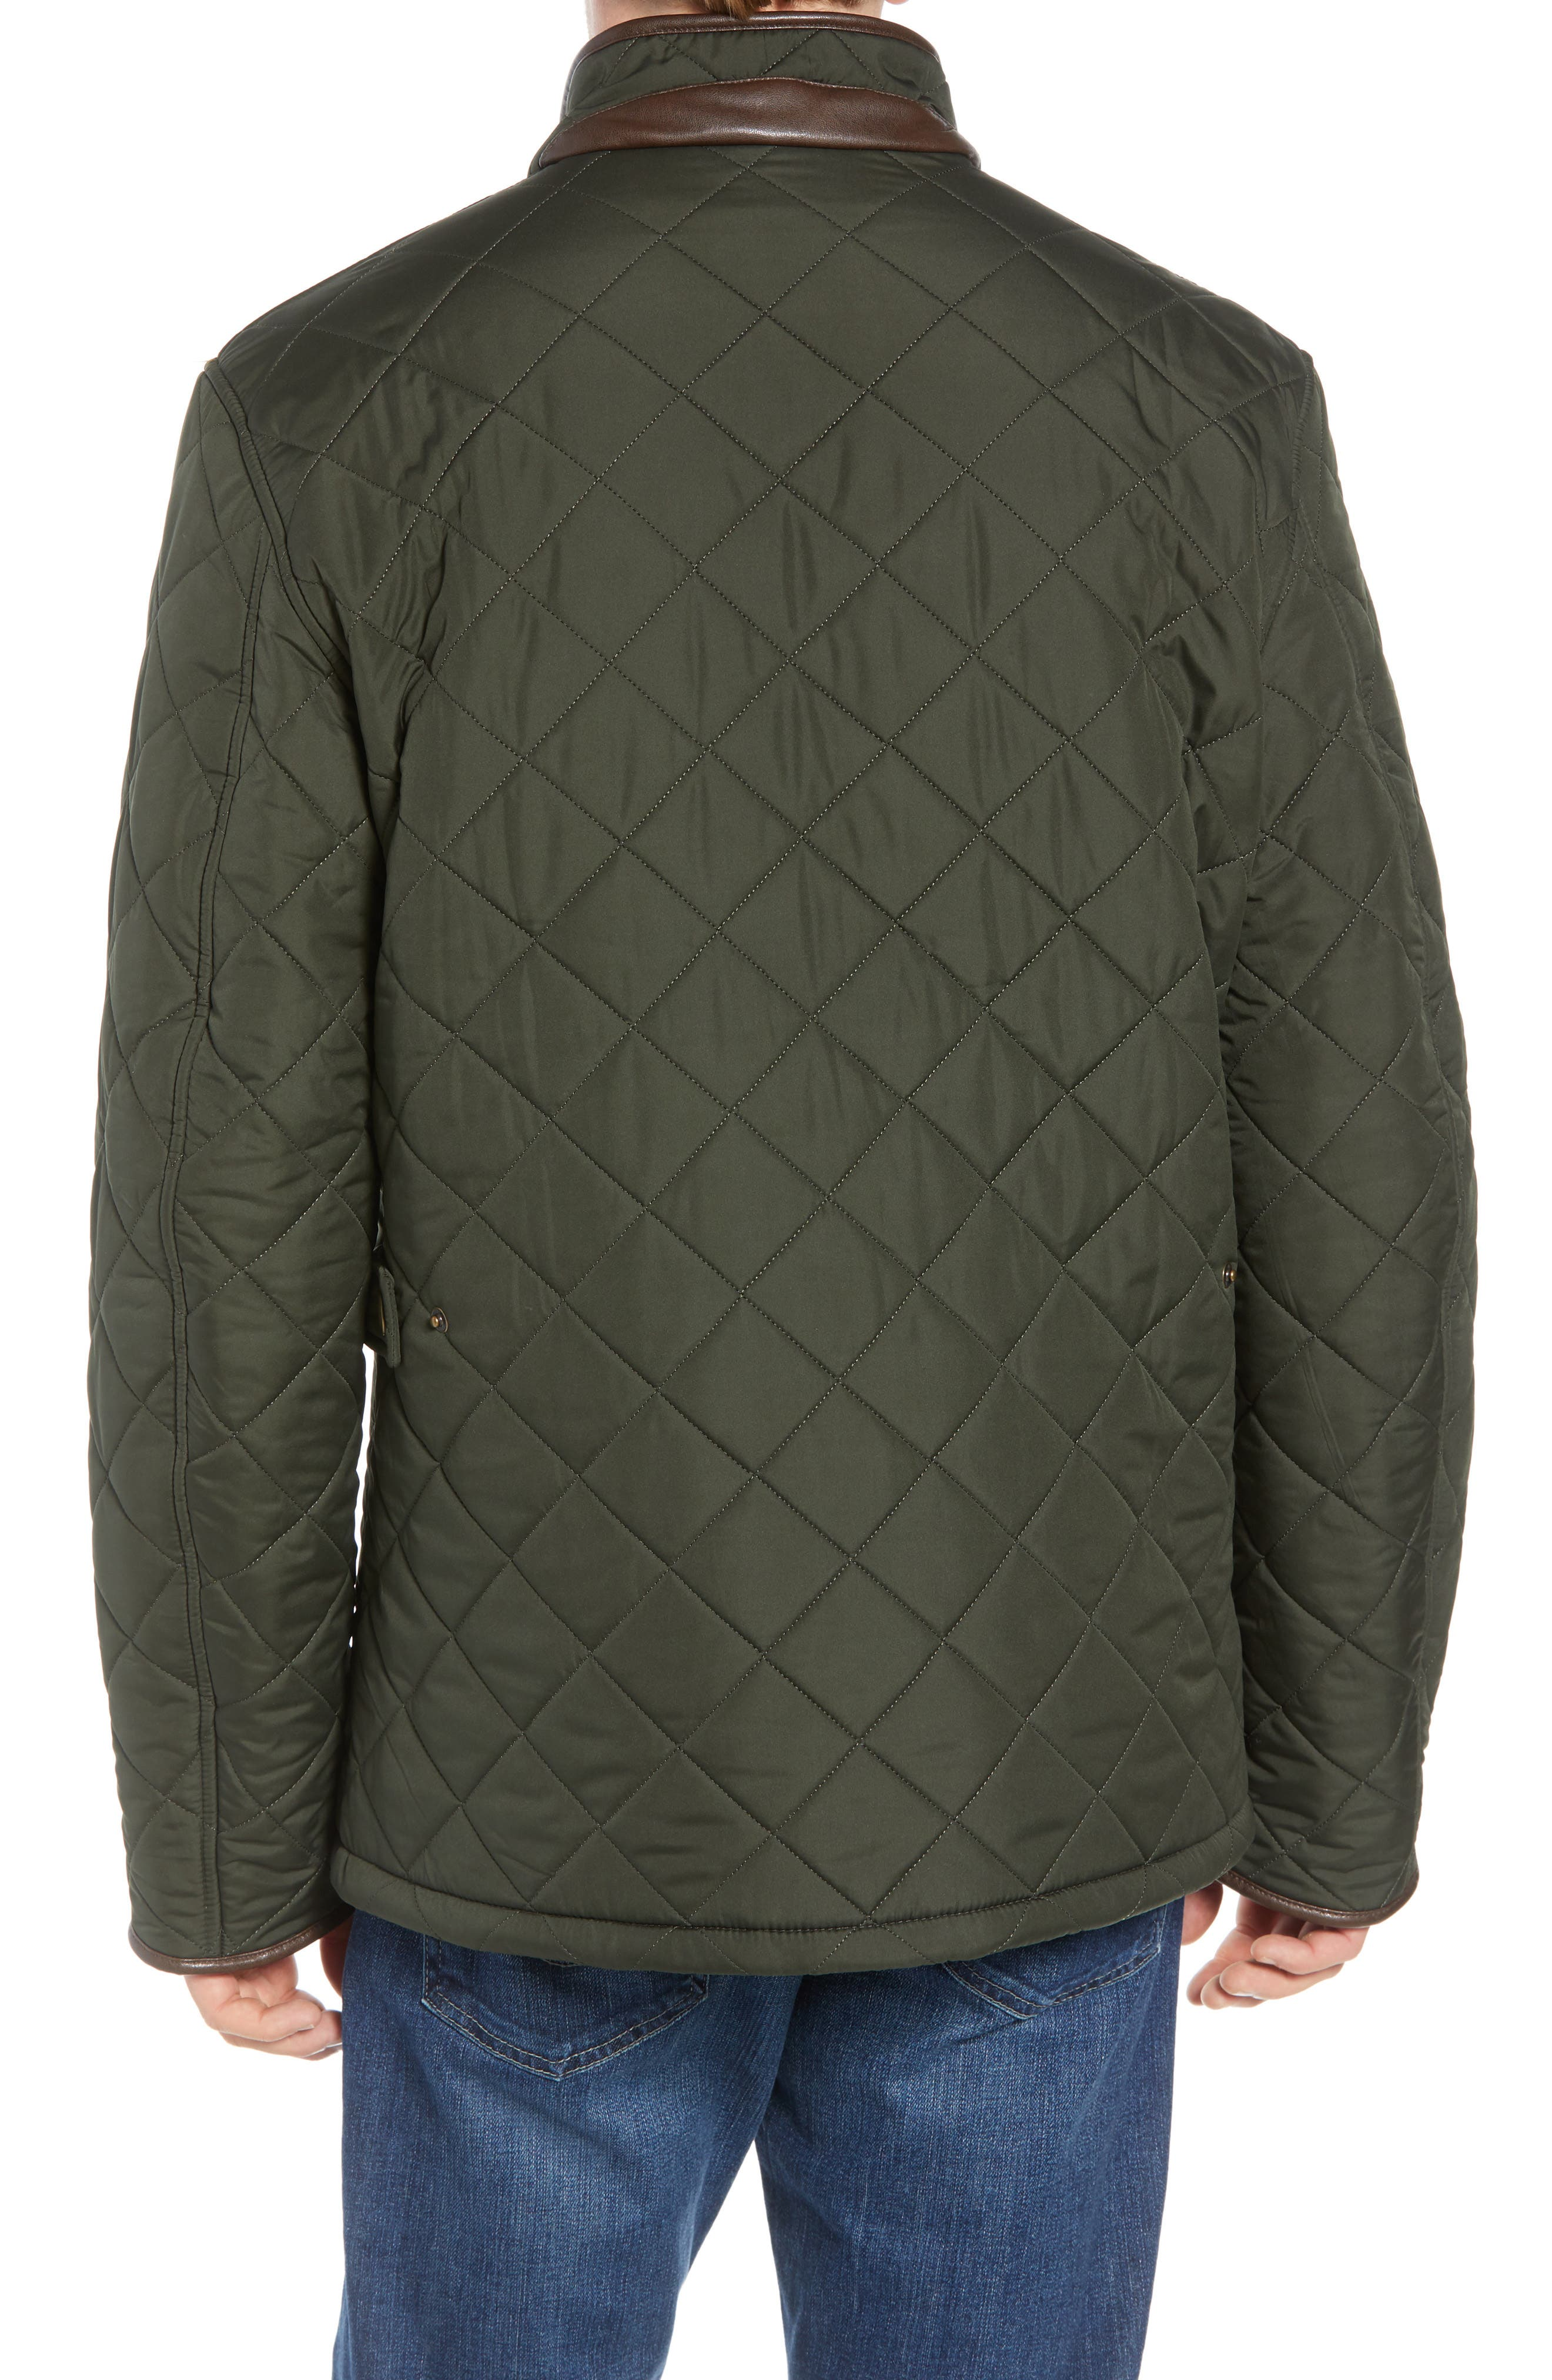 'Powell' Regular Fit Quilted Jacket,                             Alternate thumbnail 2, color,                             SAGE/ OLIVE